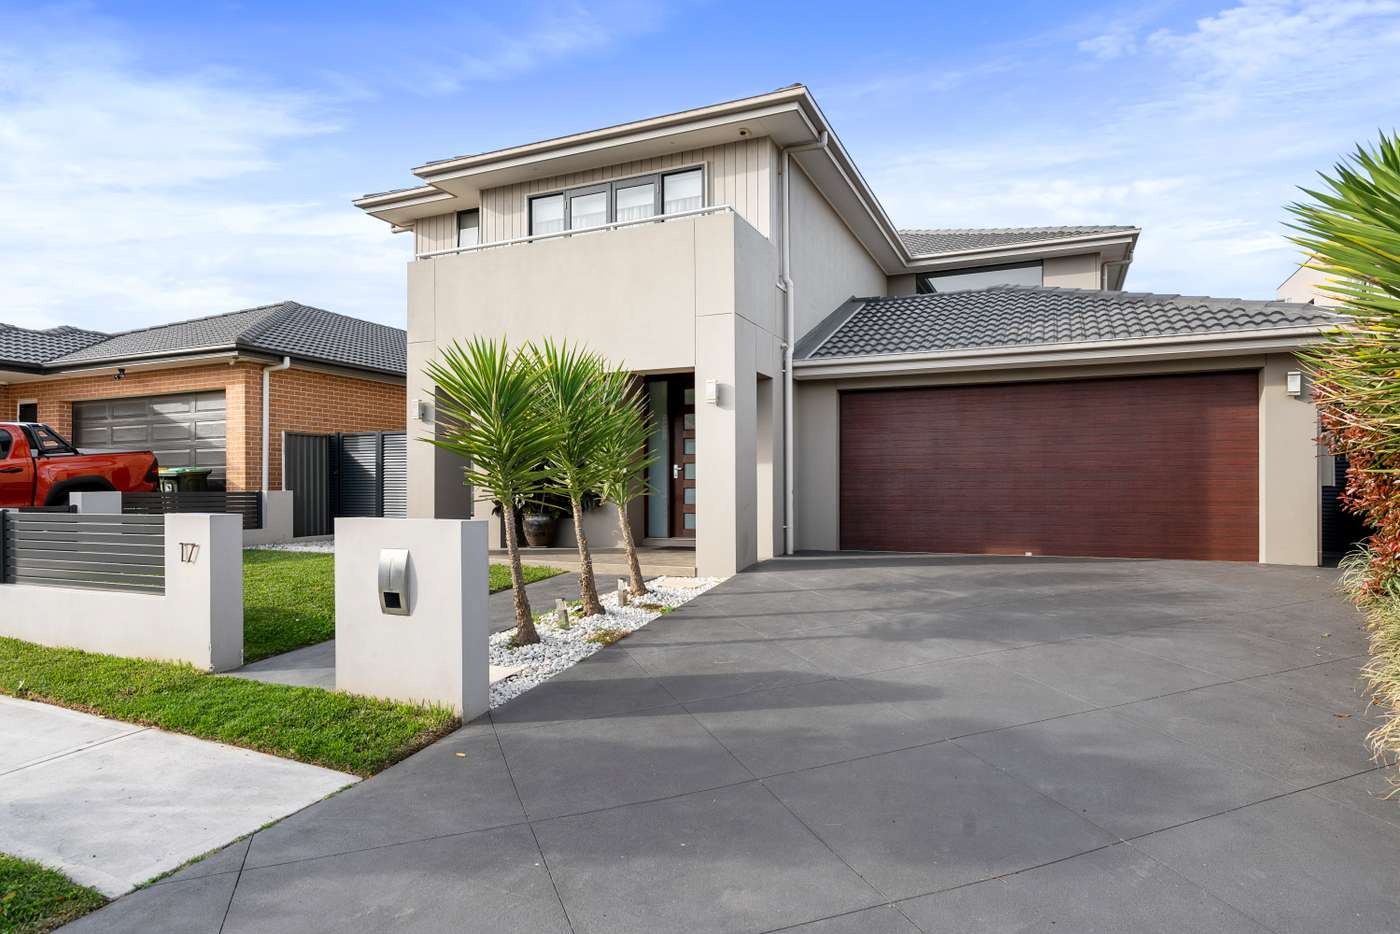 Main view of Homely house listing, 17 Patrol st, Leppington NSW 2179